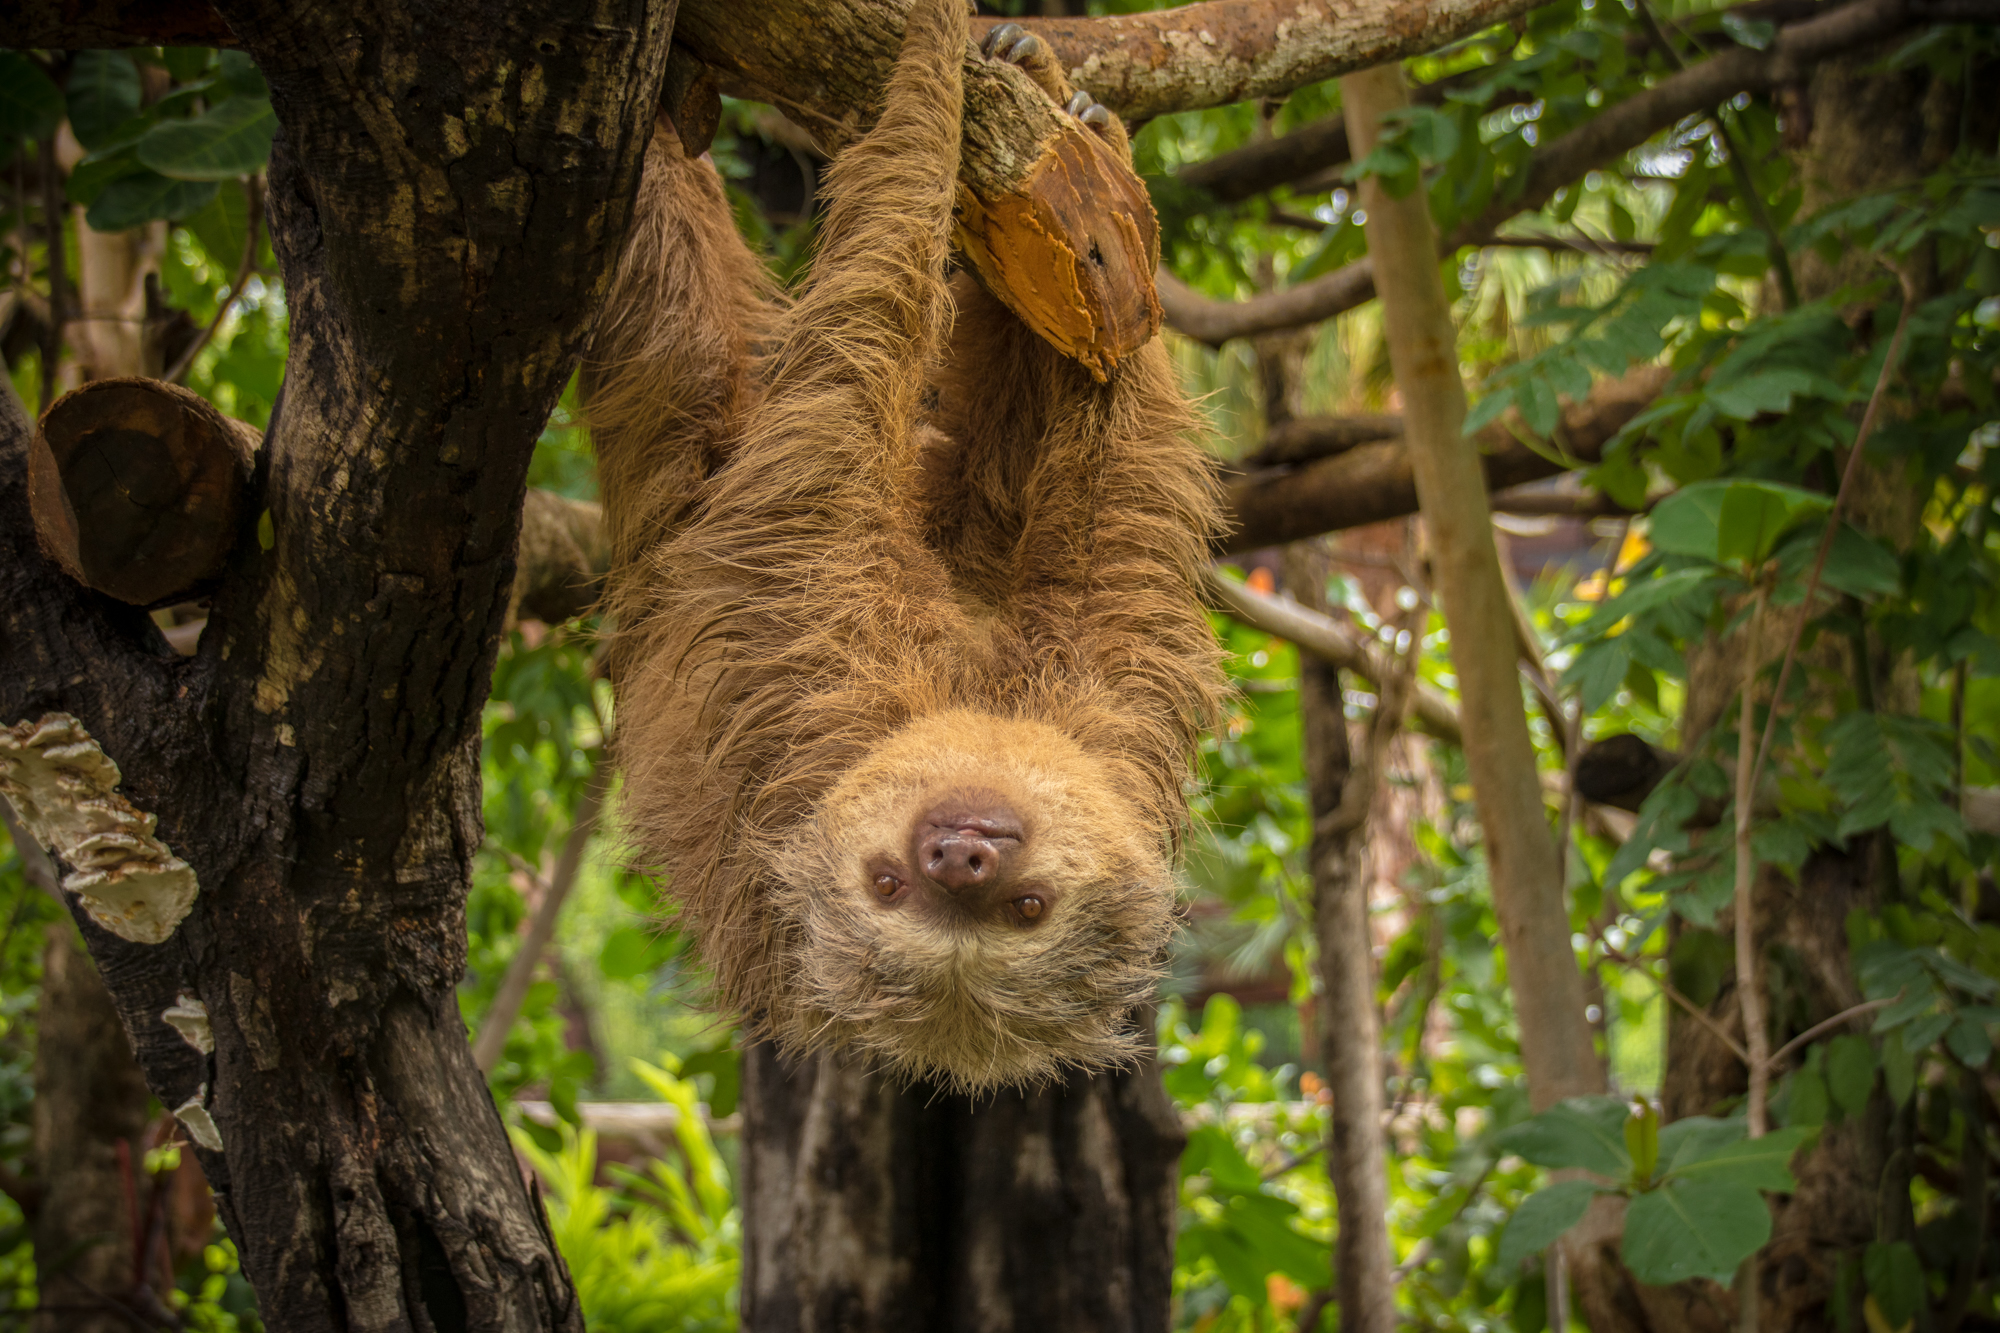 costa rica sloth sanctuary | visit and see two toed sloth rescued